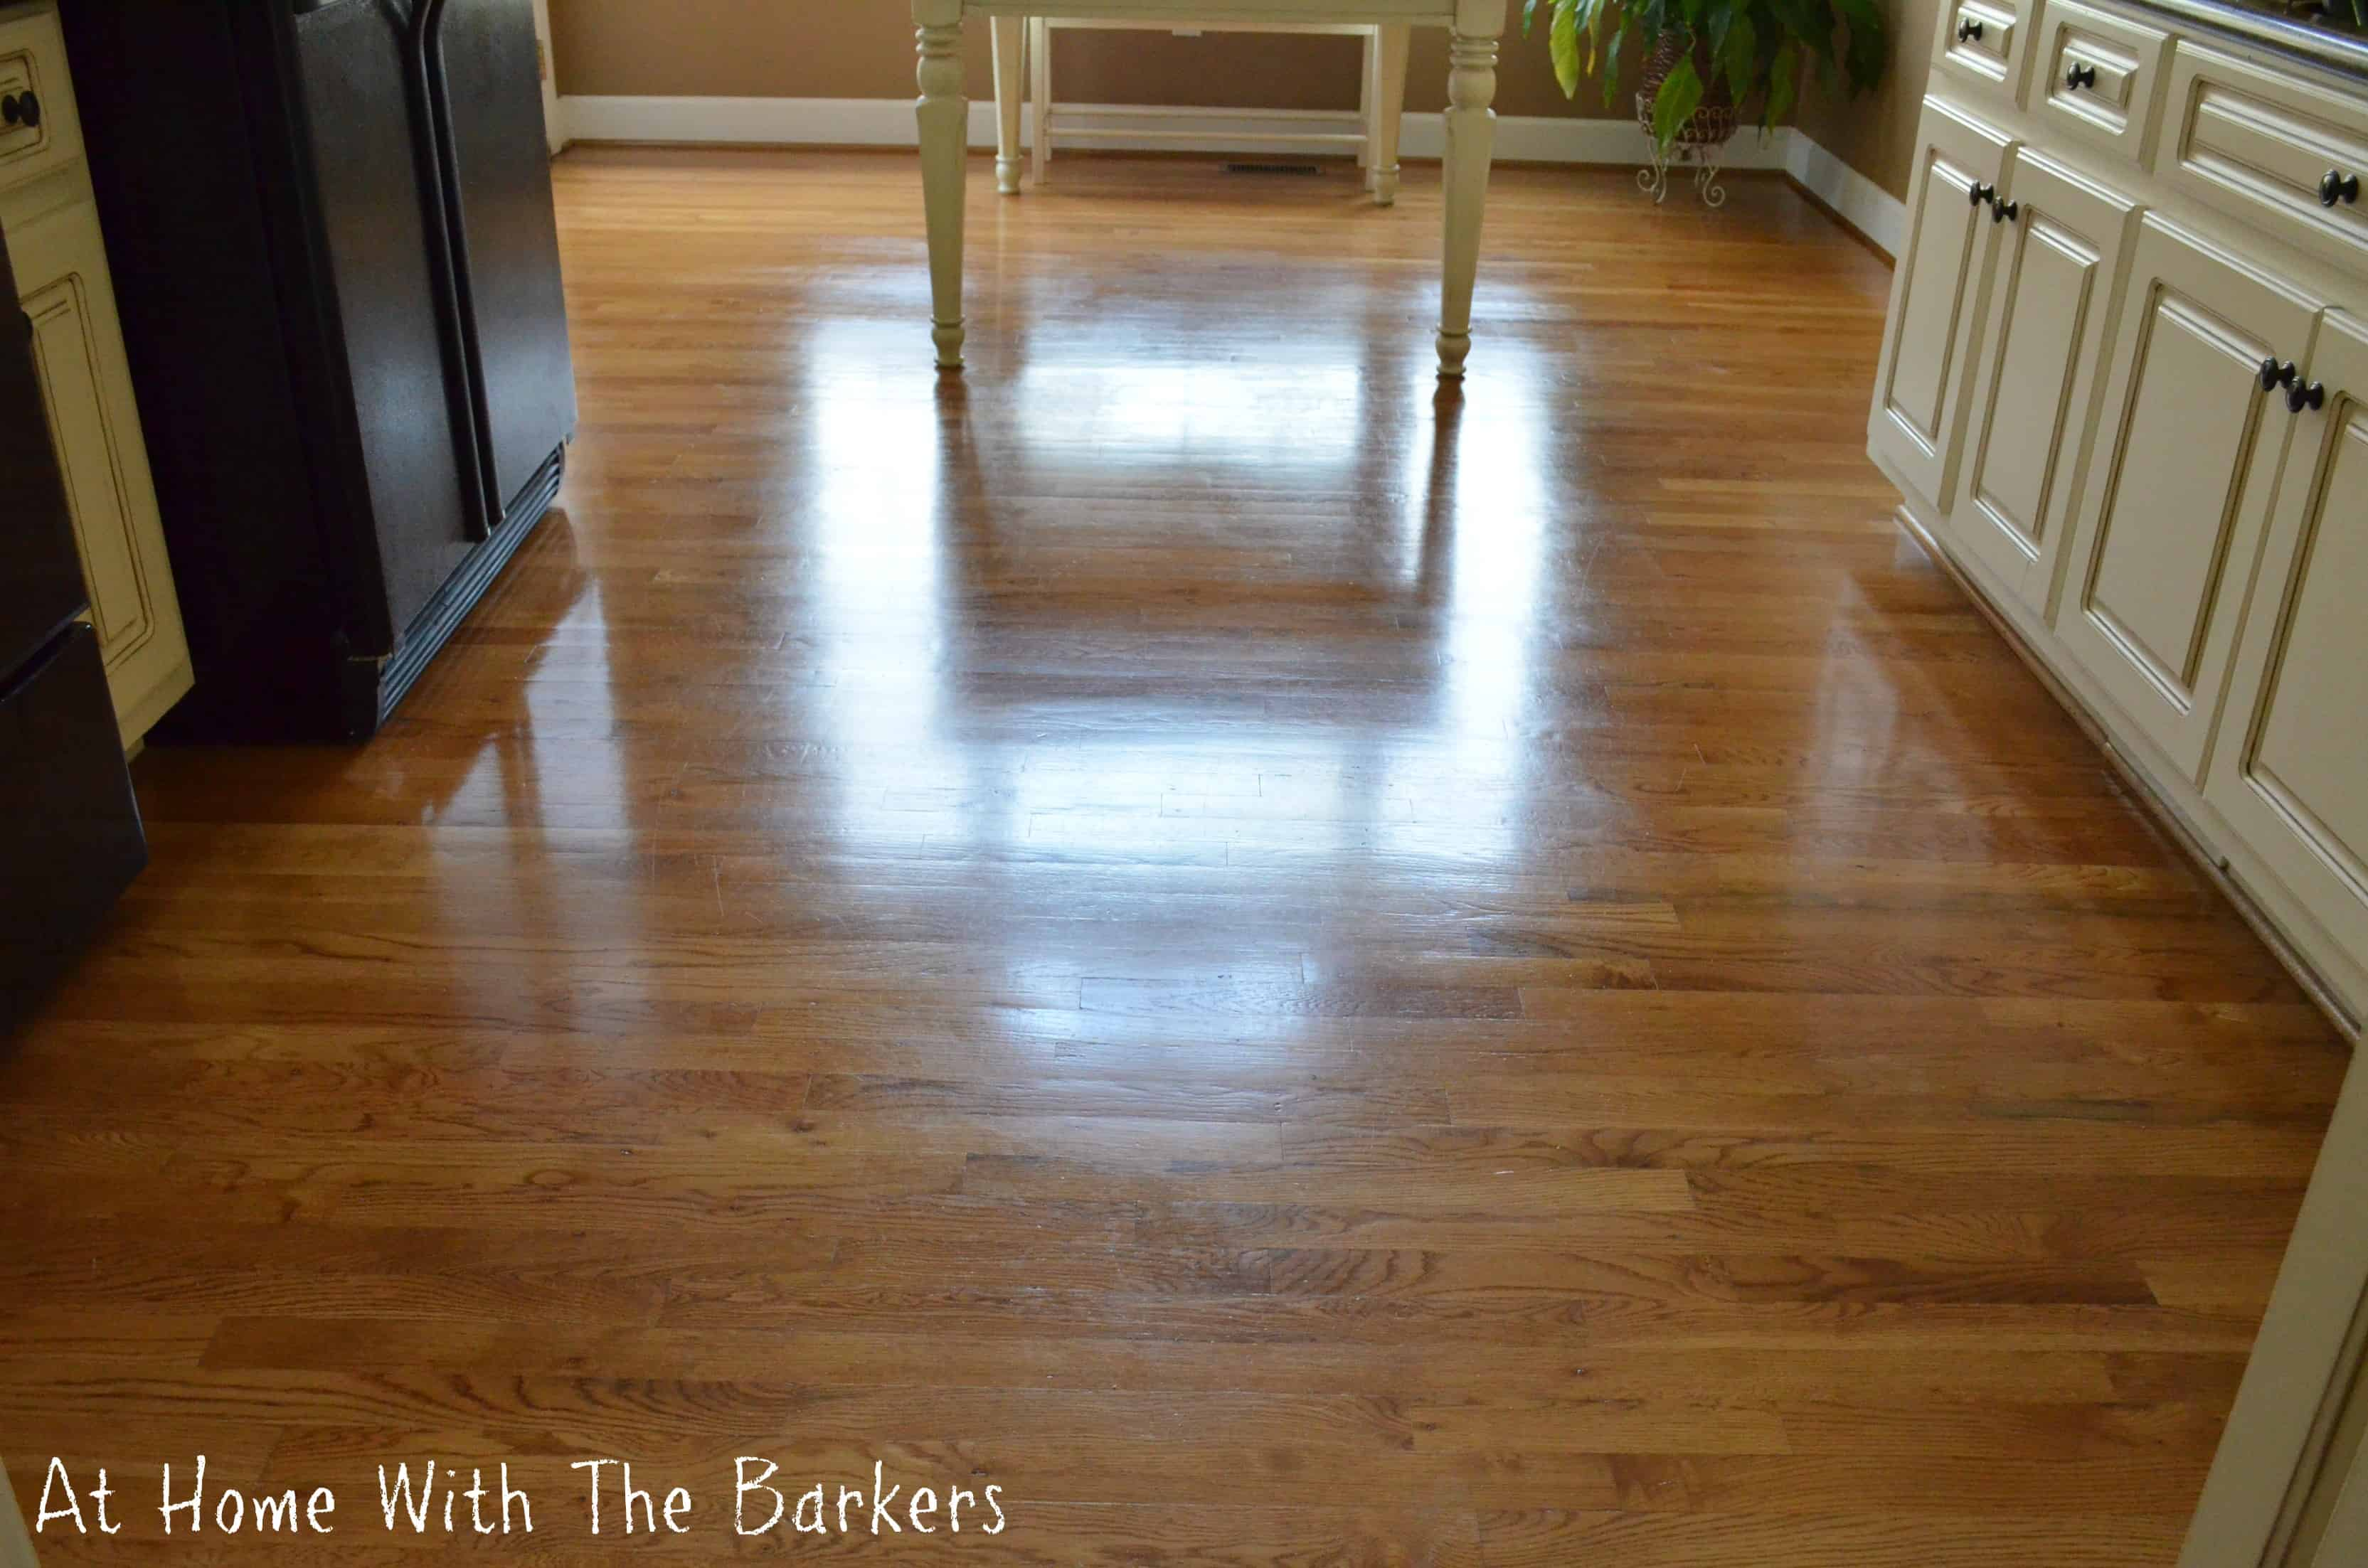 How to get your floors to shine at home with the barkers for Hardwood floors dull after cleaning